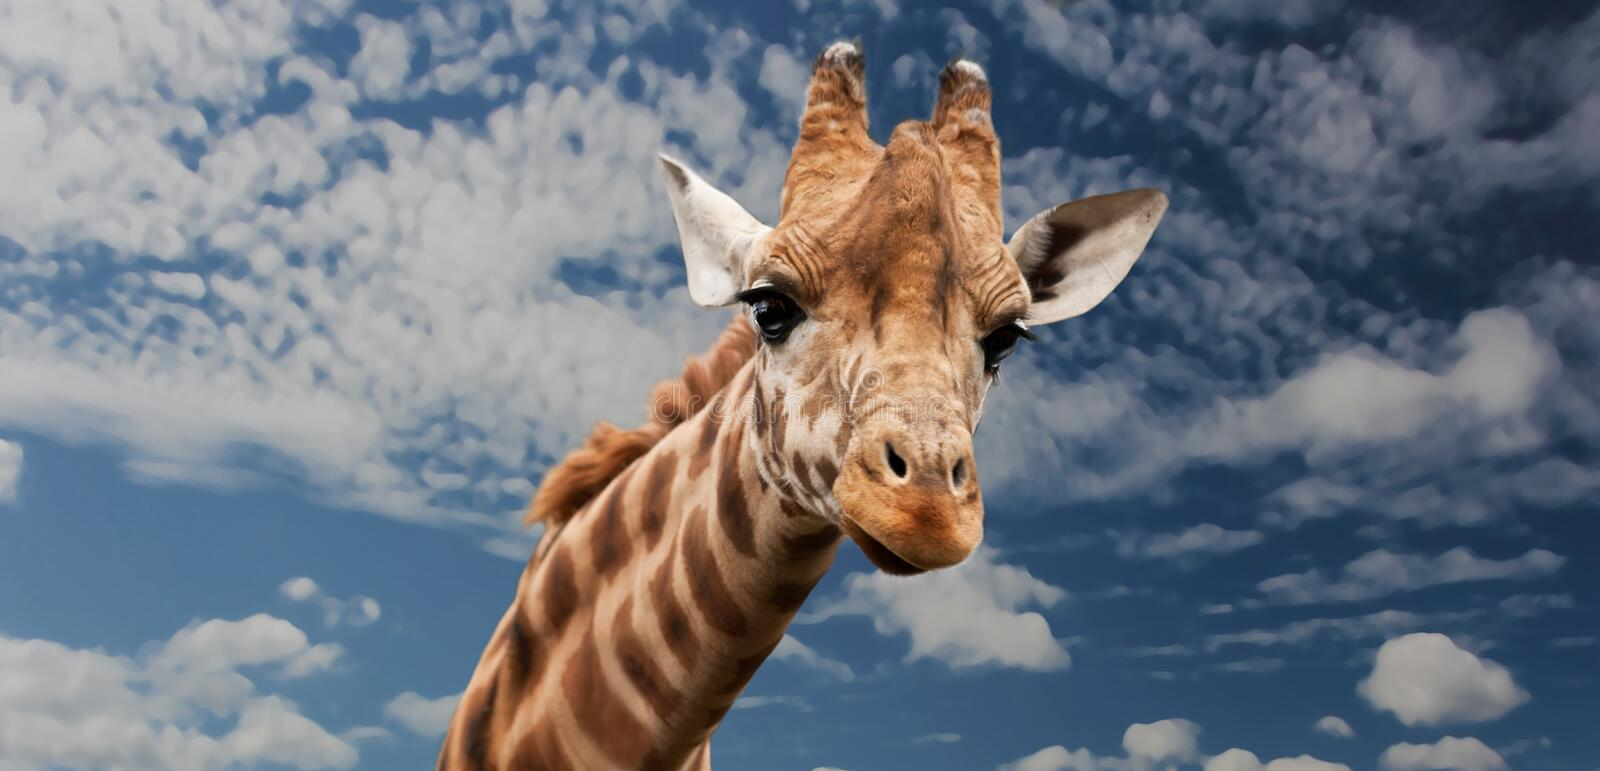 Brown Beige and White Giraffe Under White Clouds royalty free stock photography